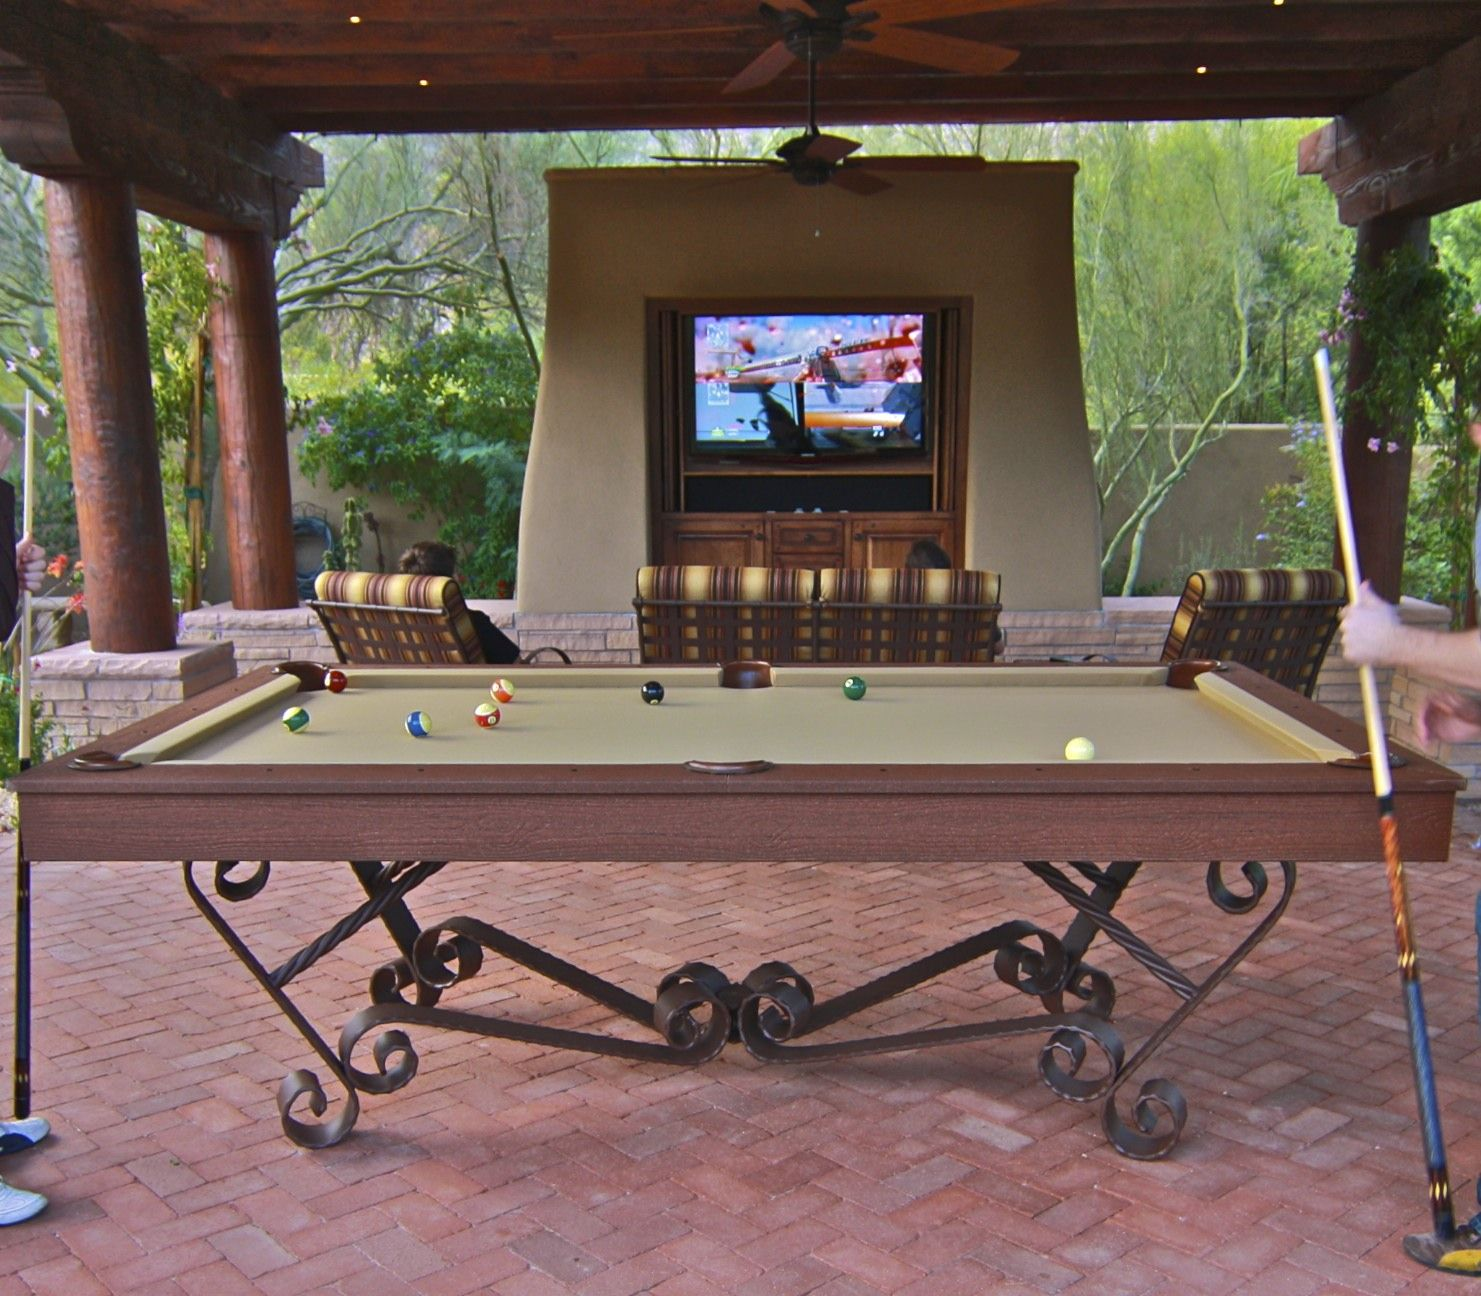 Diy Pool Table Dining Top Pool Table Outdoors How Awesome But Adjust Shots For